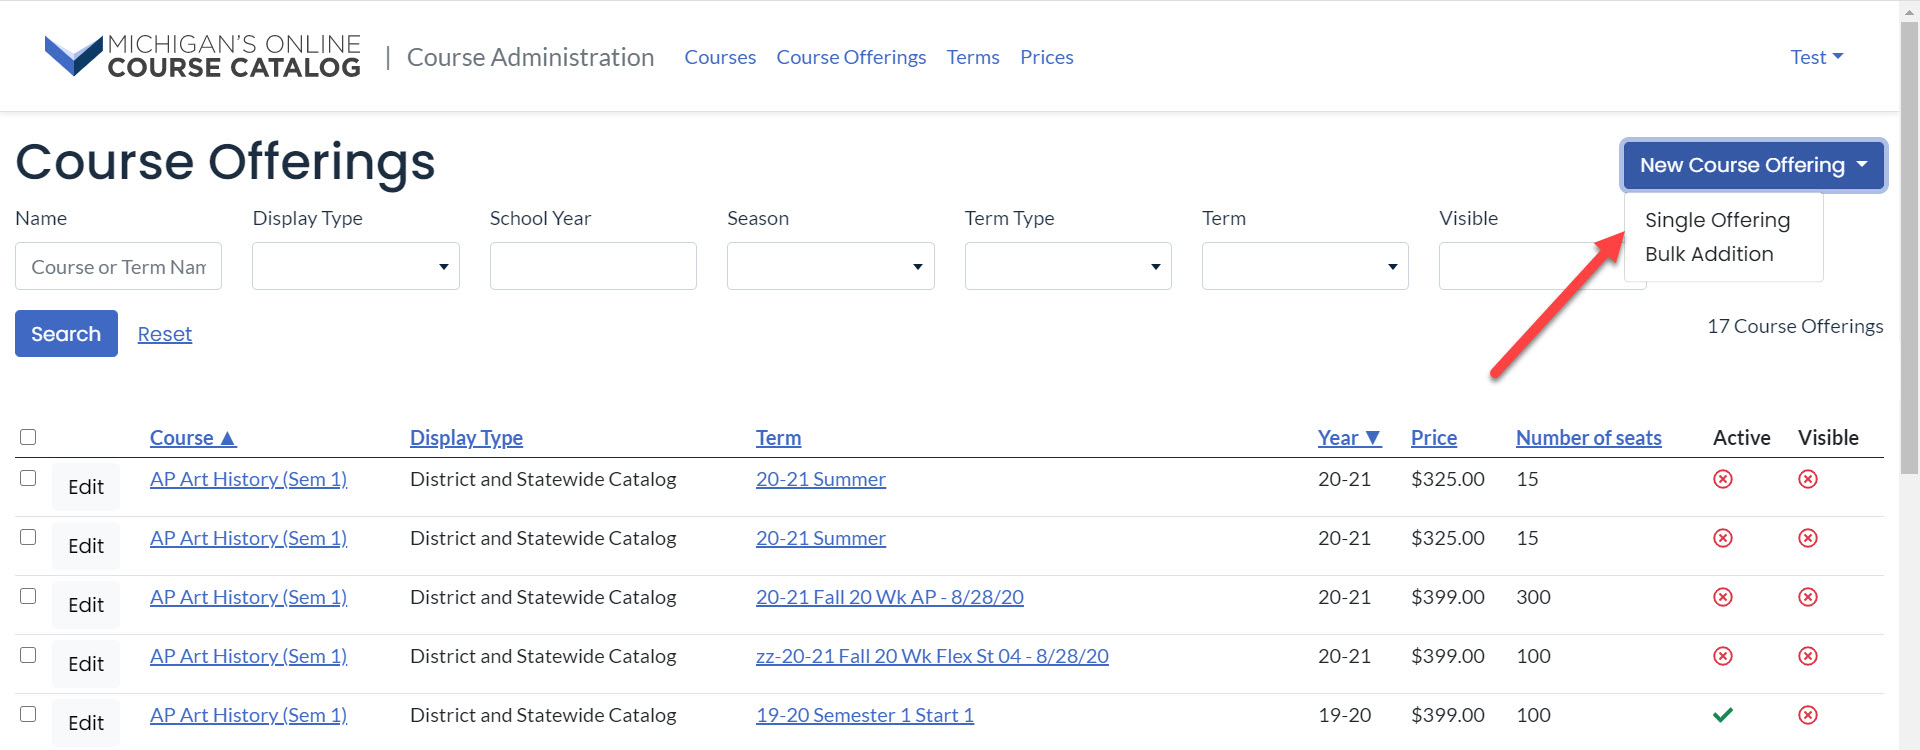 Image shows the Course Offerings page. An arrow points to the New Course Offering drop-down button with the two options displayed.